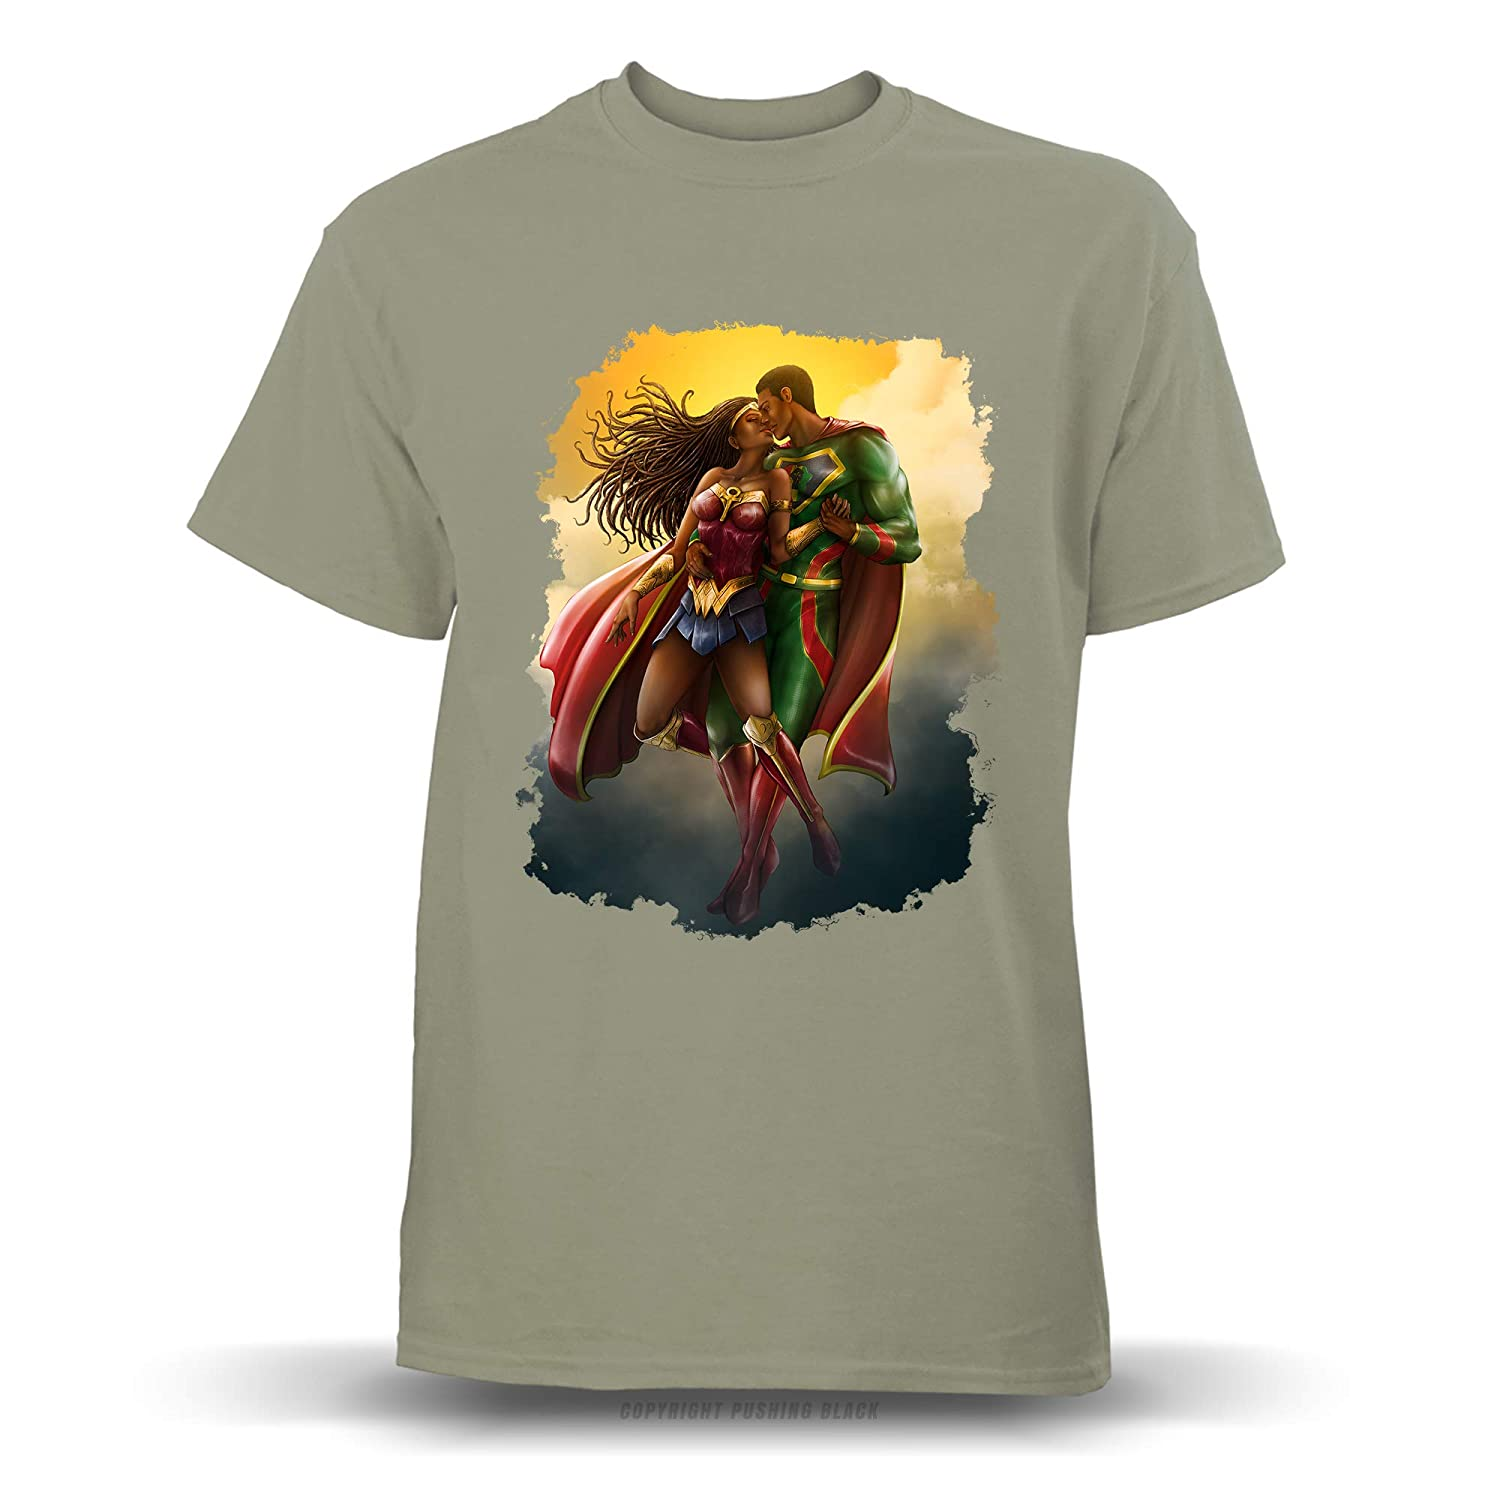 Hoodies Tank Tops and More Black Man of Strength and Black Woman of Wonder T-Shirts